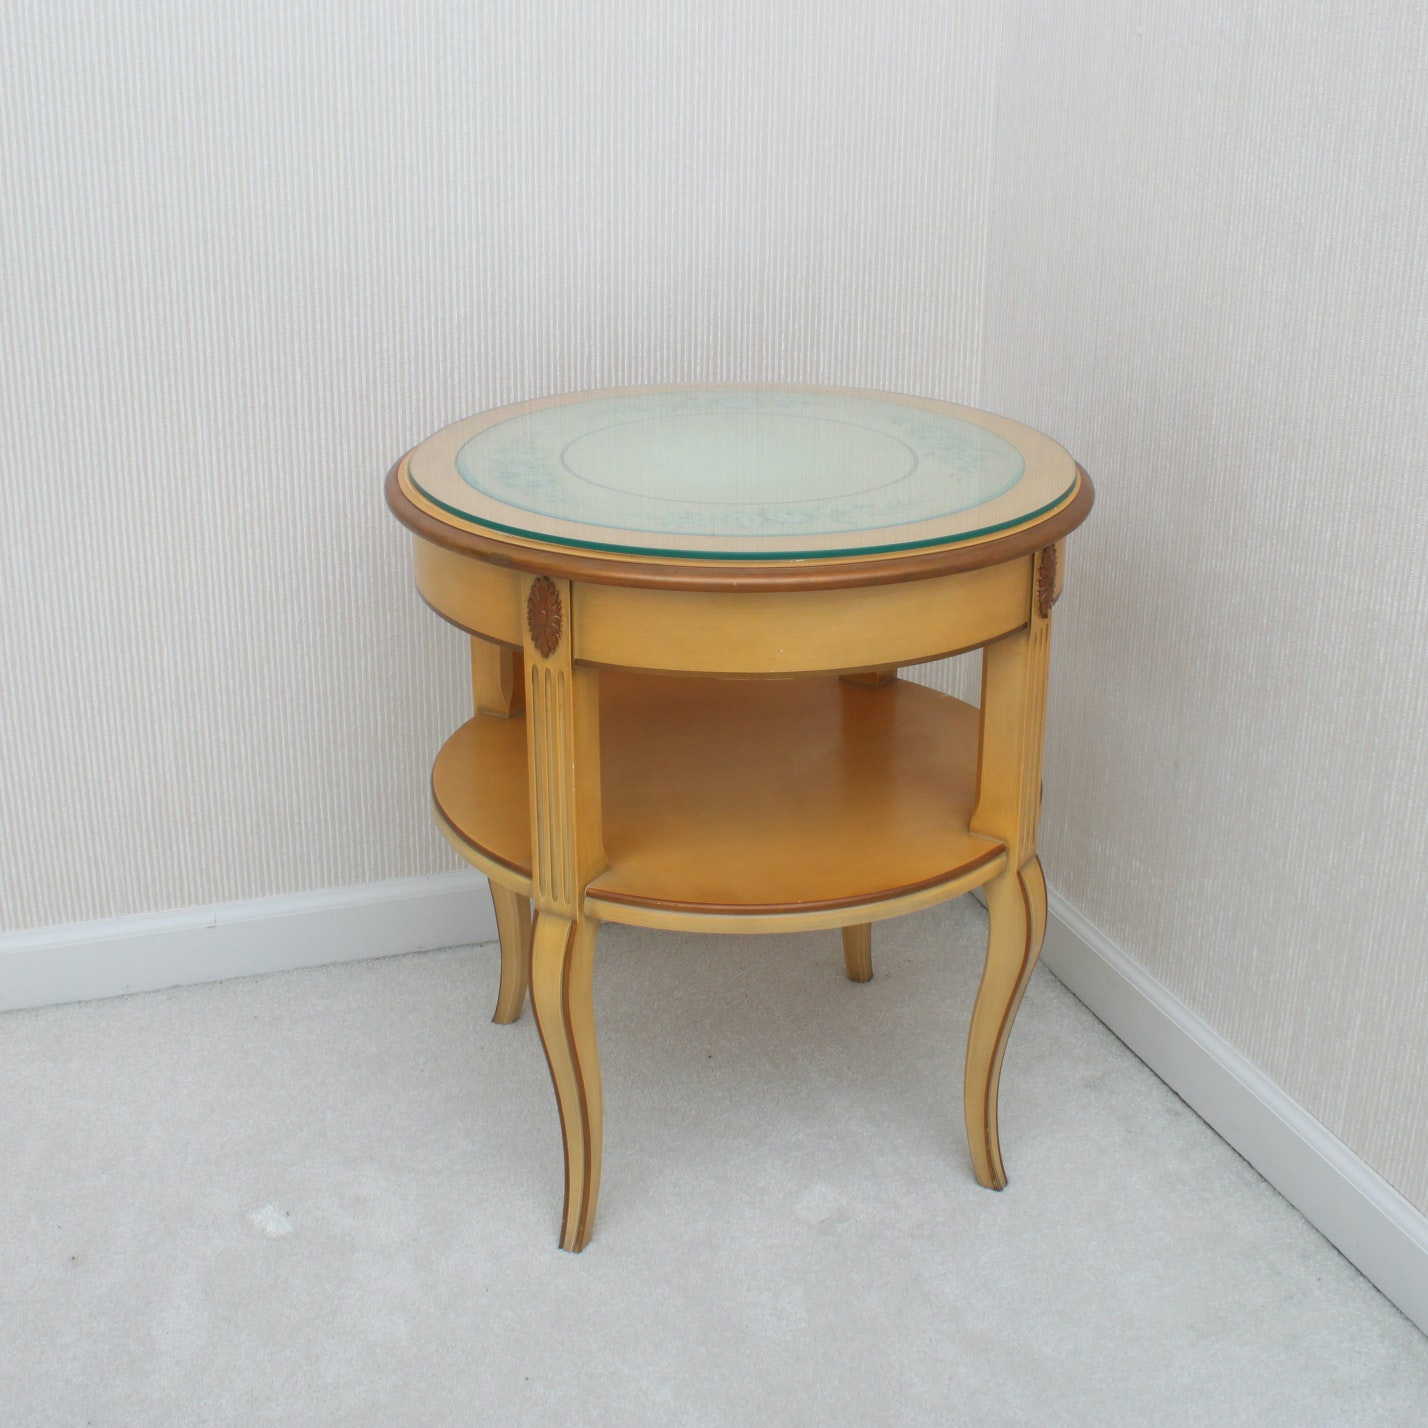 Vintage Wooden French Provincial Style Side Table